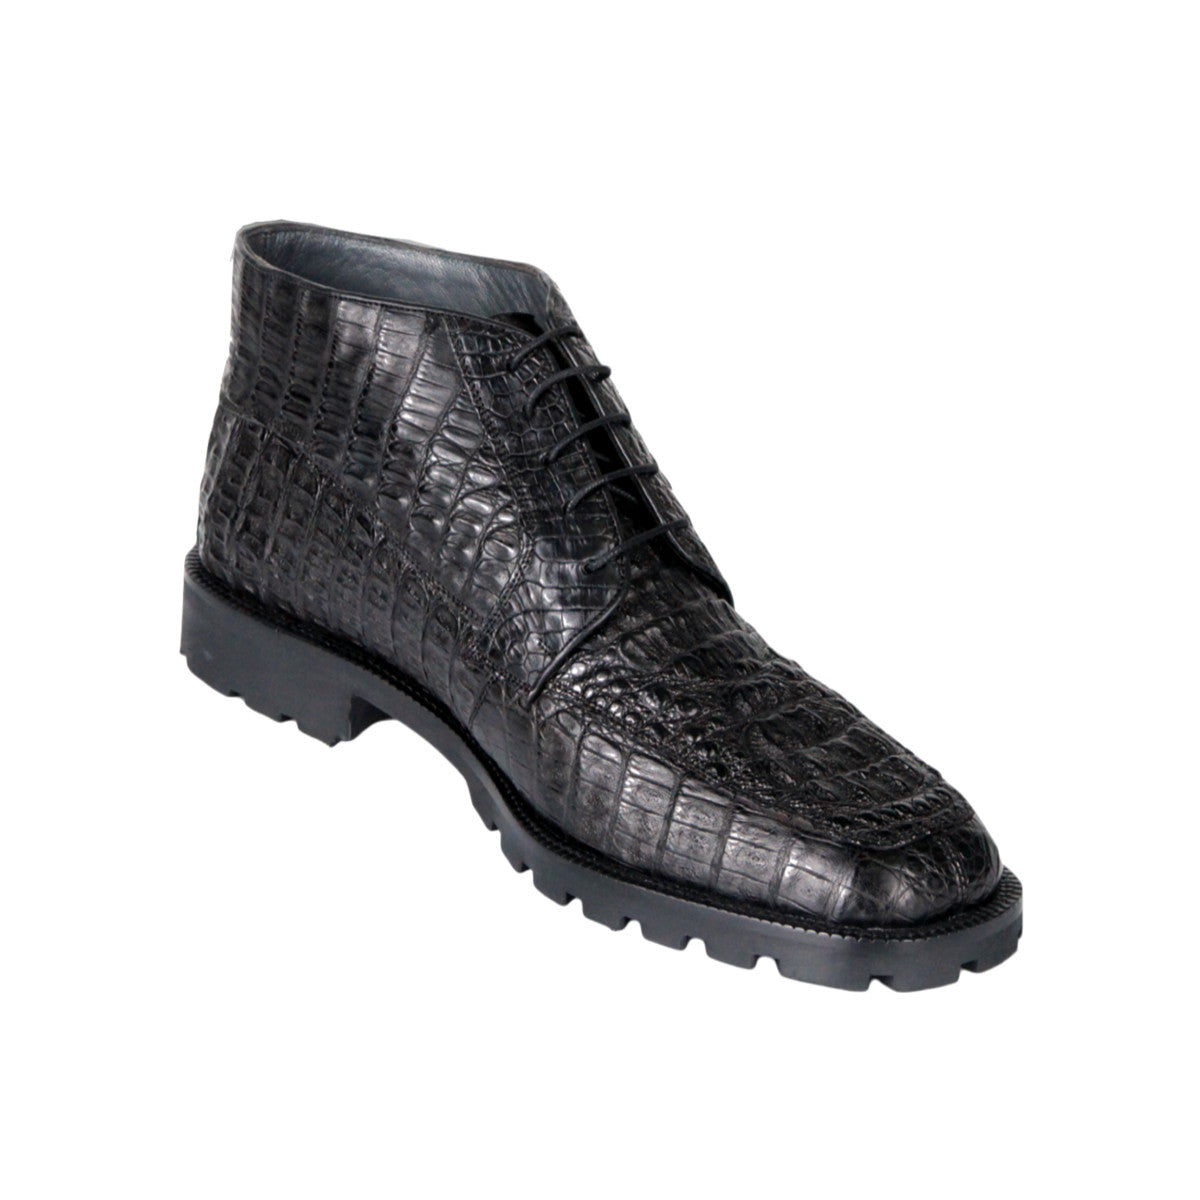 Los Altos Boots High Top Shoes Caiman Hornback